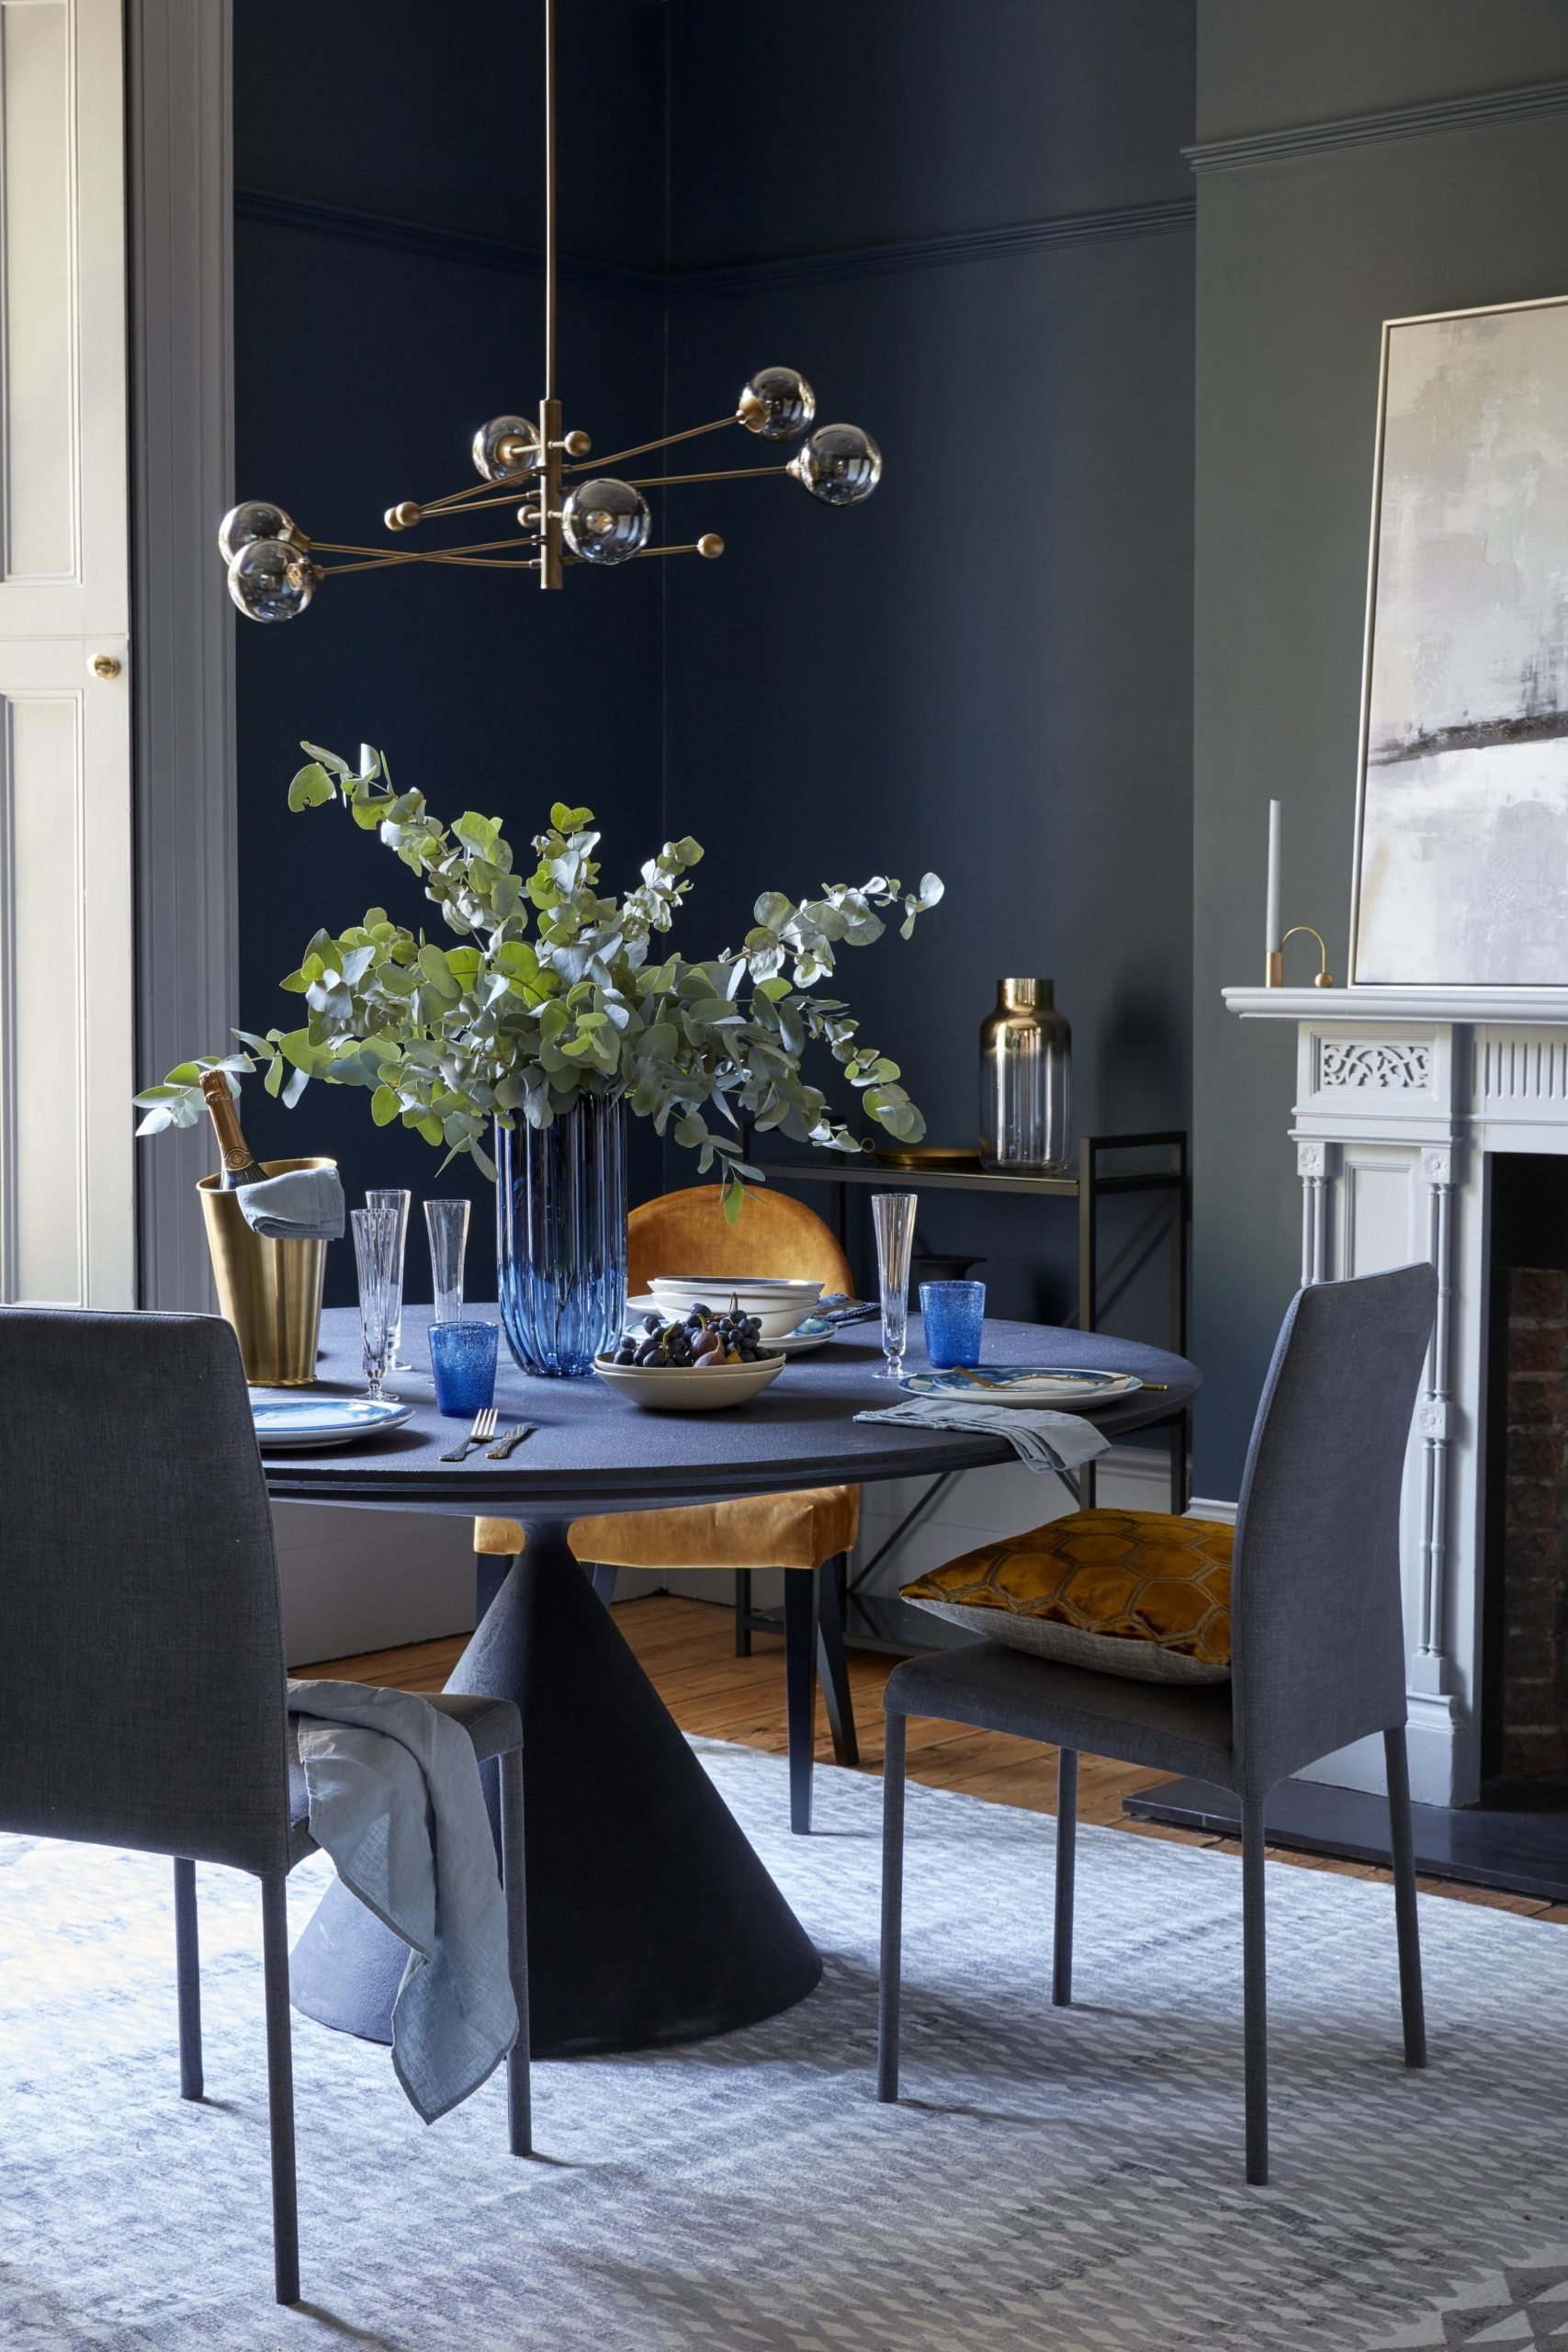 12 Best Dining Room Decorating Ideas - Pictures of Dining Room Decor - Dining Room Update Ideas